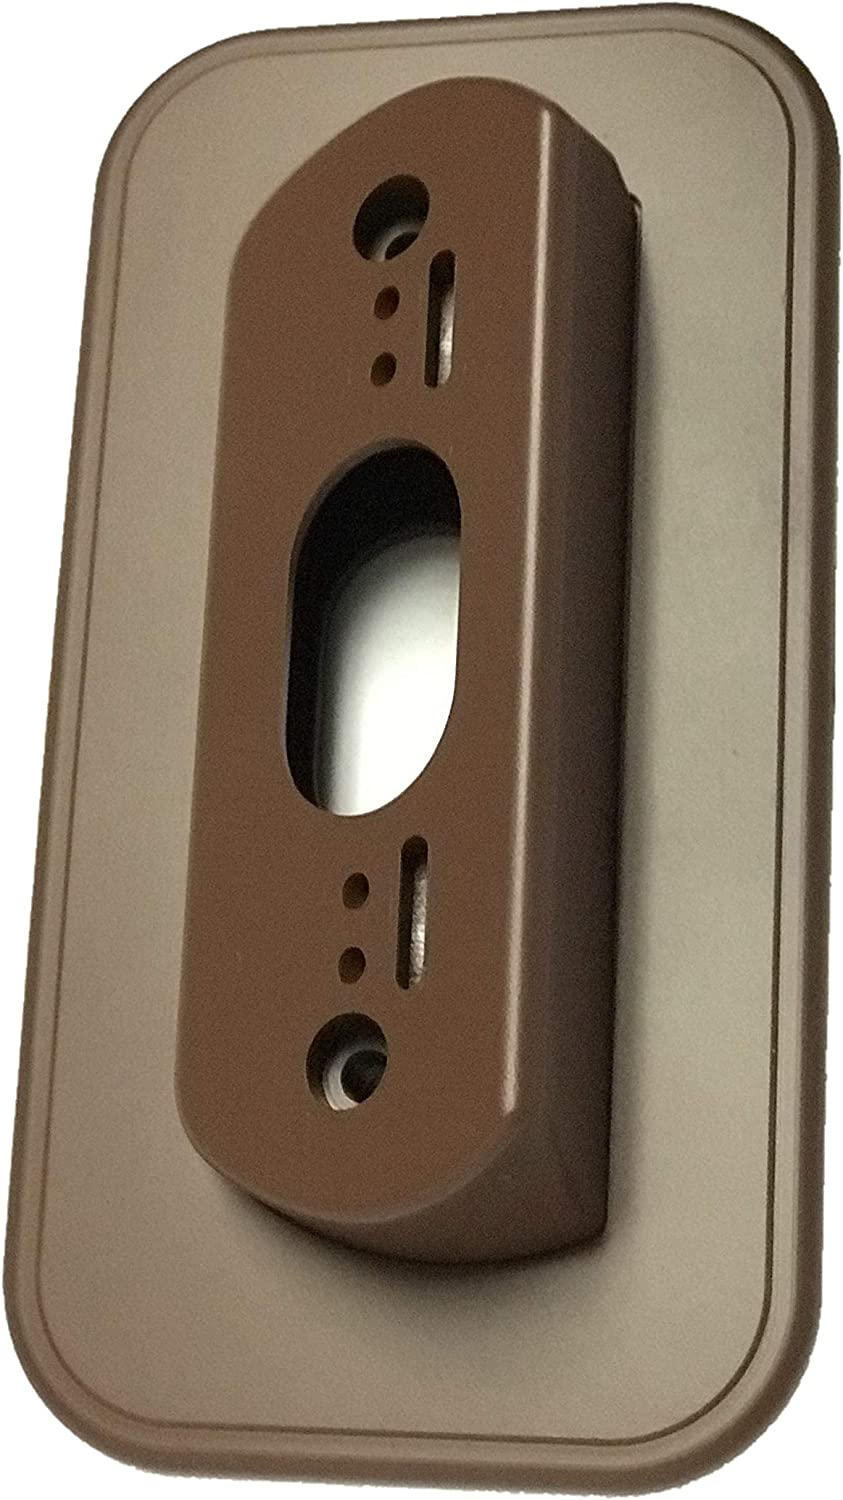 Wall Plate with 30 Degree Angle Mount for Nest Hello Video Door Bell - Coffee